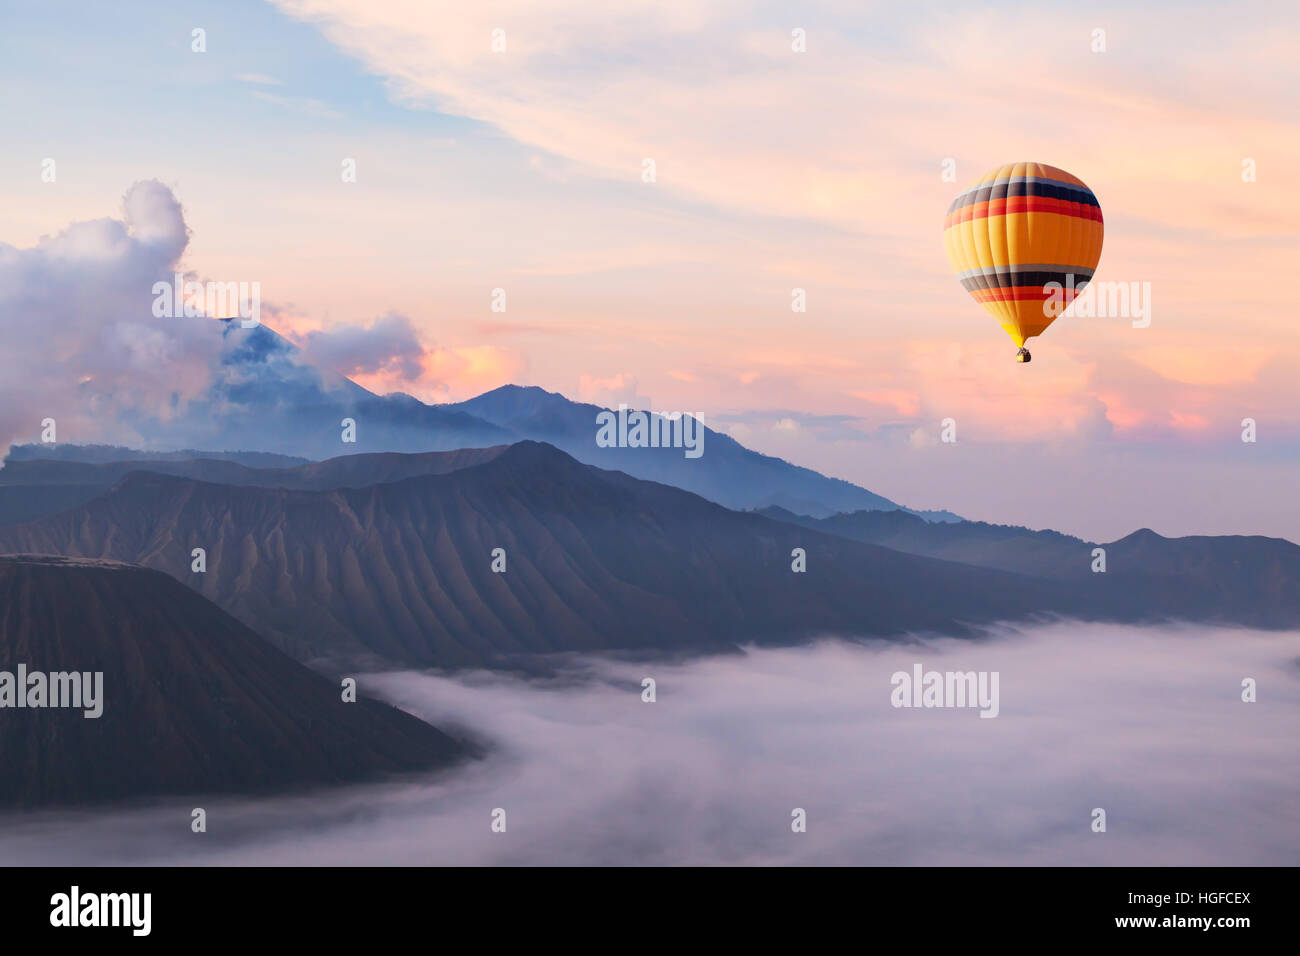 beautiful inspirational landscape with hot air balloon flying in the sky, travel destination - Stock Image